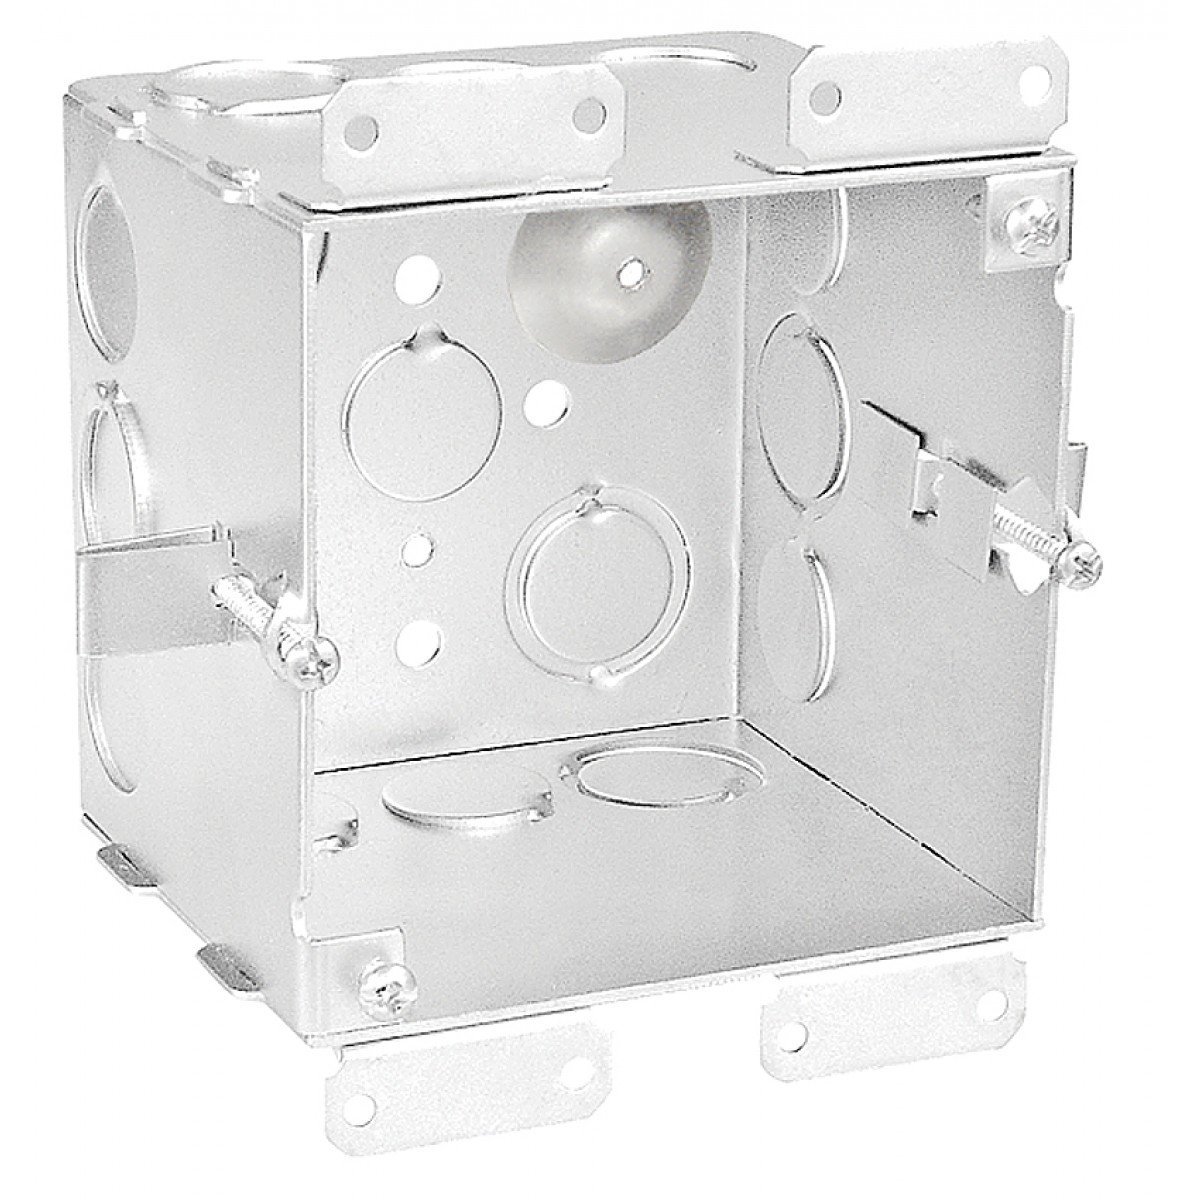 1 Pc, 4'' Square Cut In Old Work Junction Box, 2-1/8 In. Deep, (6) 1/2 In. & (6) 1/2-3/4 In. Side Knockouts; (2) 1/2 In. & (2) 3/4 In. Bottom Knockouts, .0625 Galvanized Steel